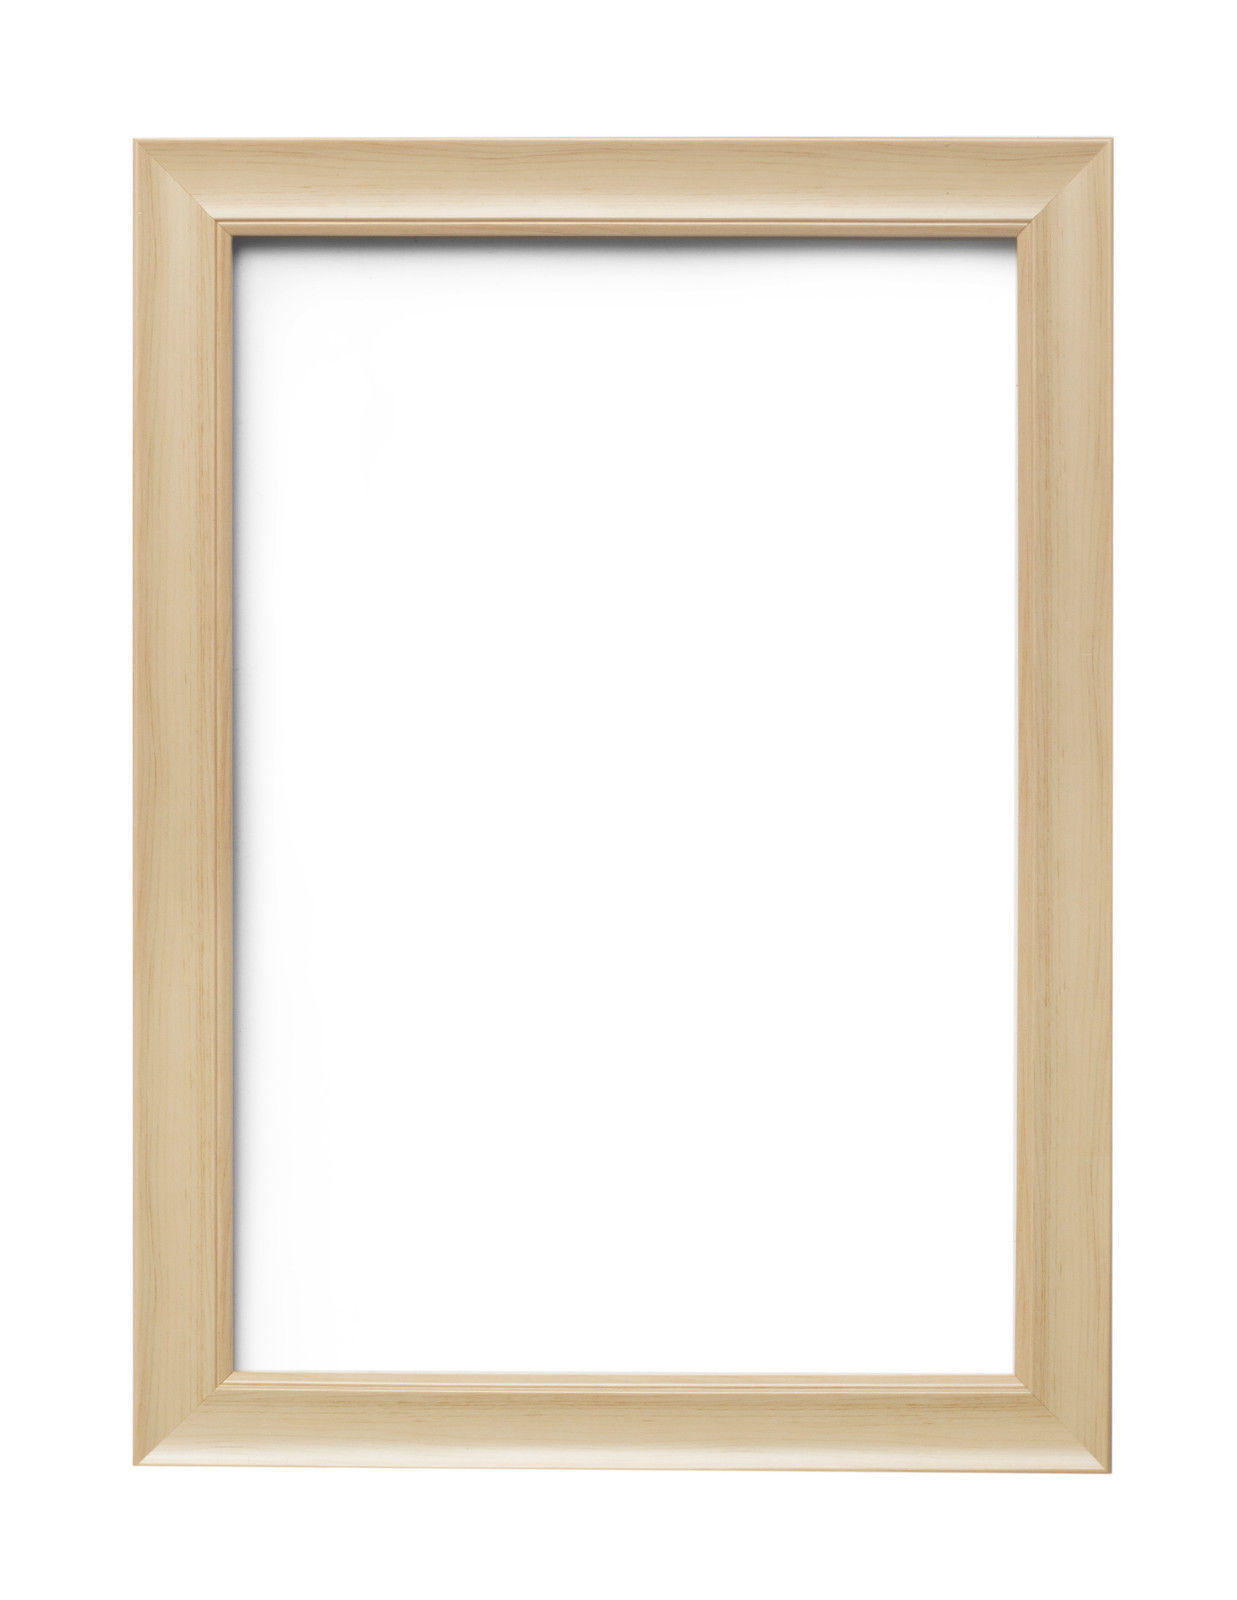 DELUXE35 Picture Frame 85x116 cm or 116x85 cm Photo//Gallery//Poster Frame